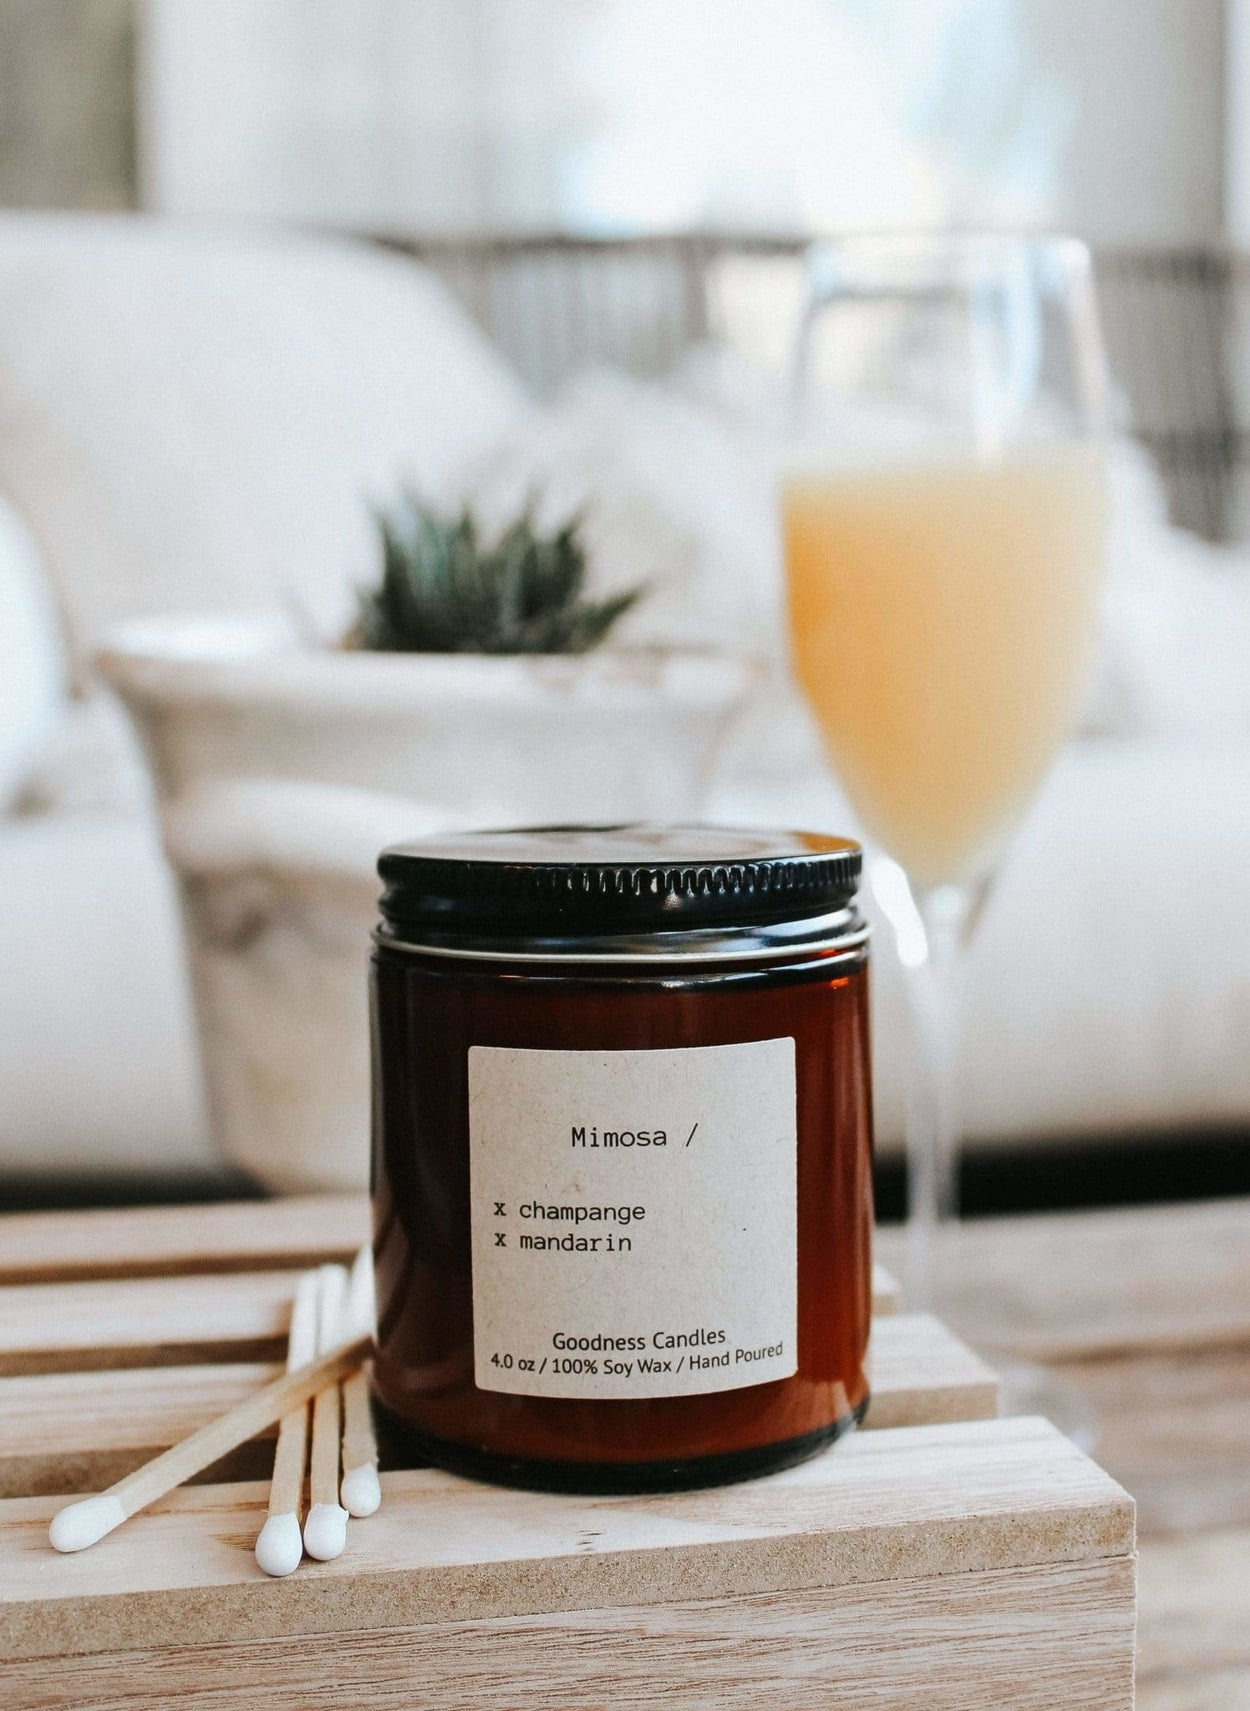 Mimosa Goodness Candles